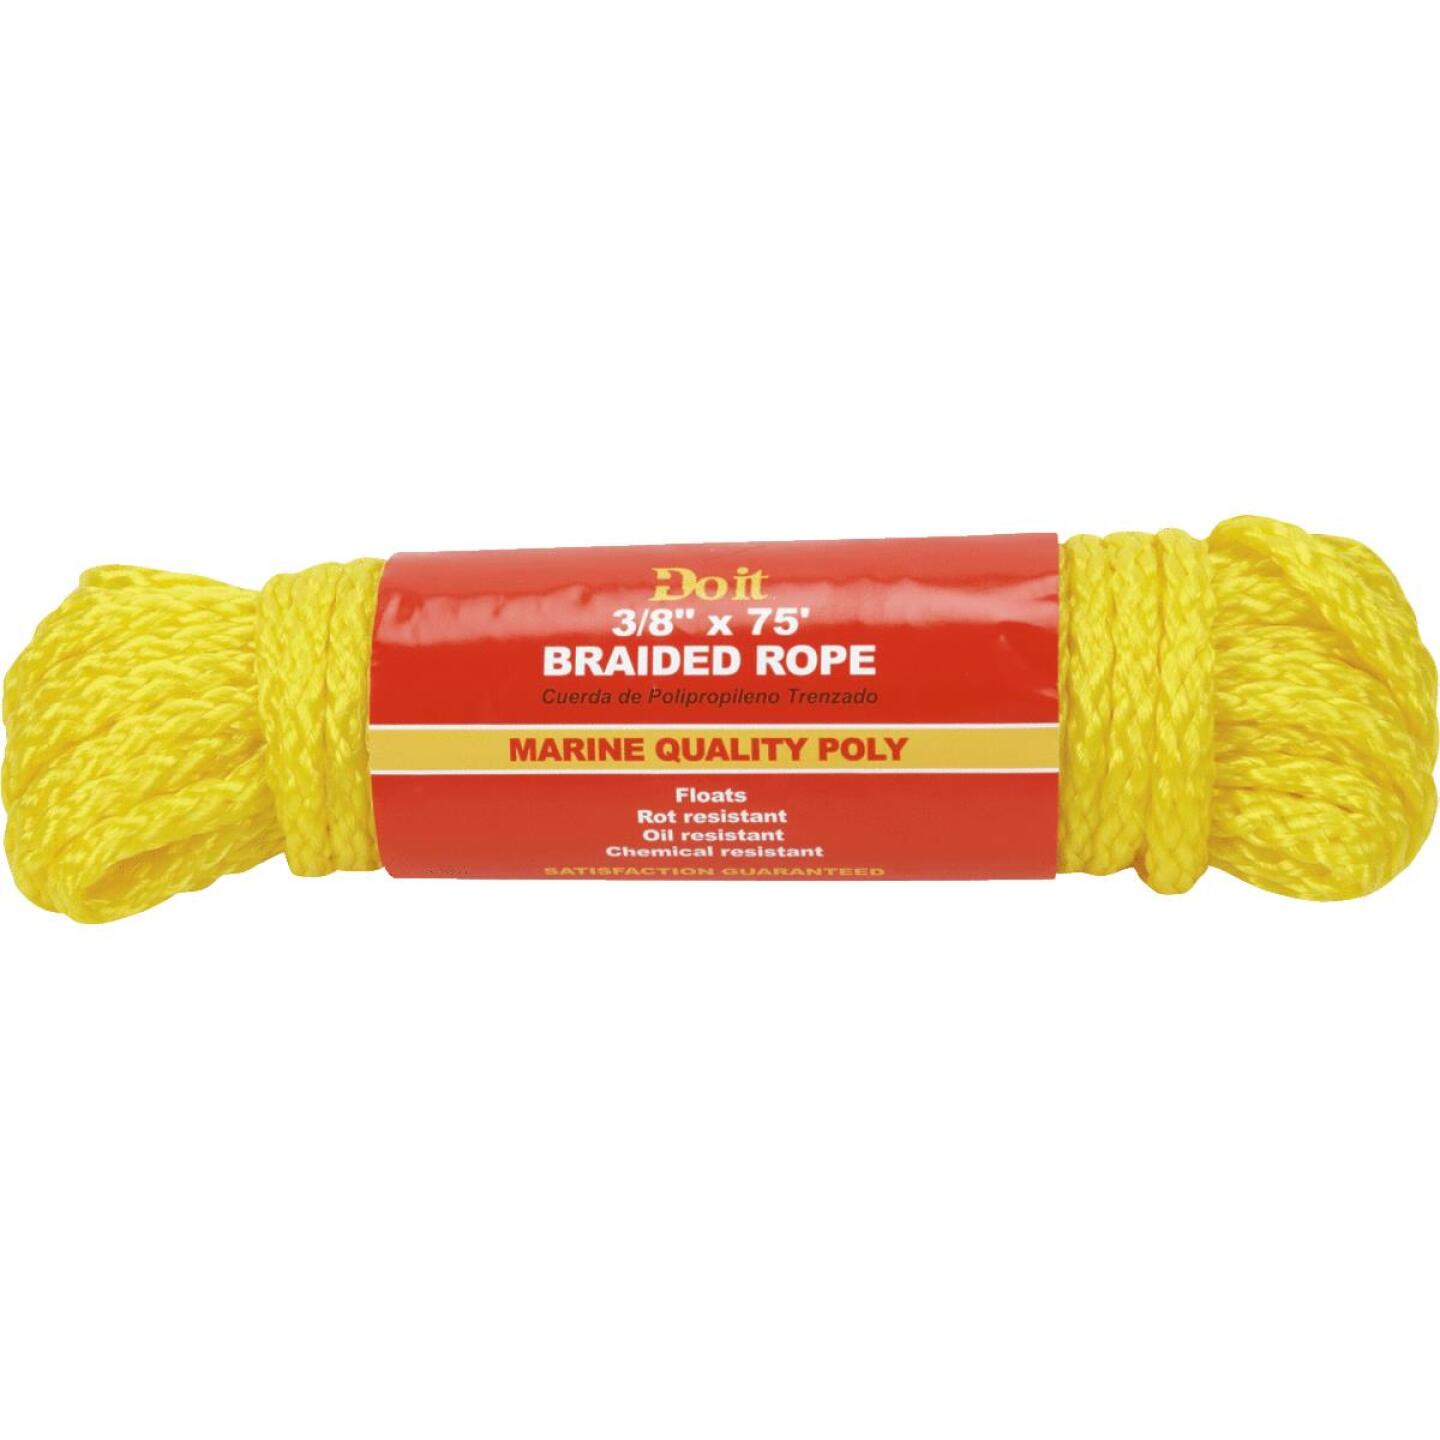 Do it 3/8 In. x 75 Ft. Yellow Braided Polypropylene Packaged Rope Image 1